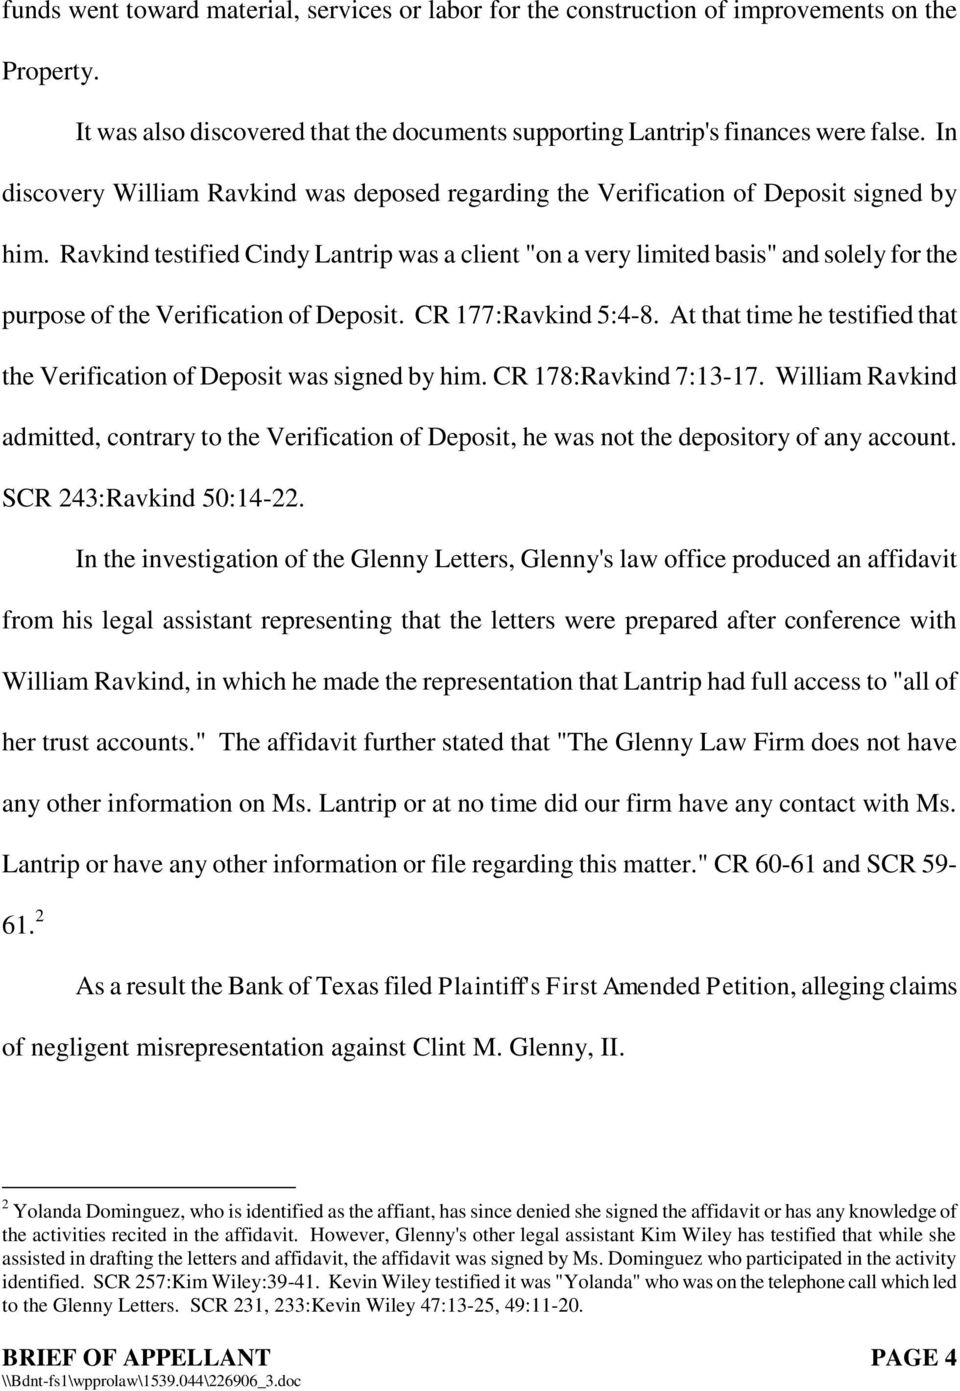 "Ravkind testified Cindy Lantrip was a client ""on a very limited basis"" and solely for the purpose of the Verification of Deposit. CR 177:Ravkind 5:4-8."